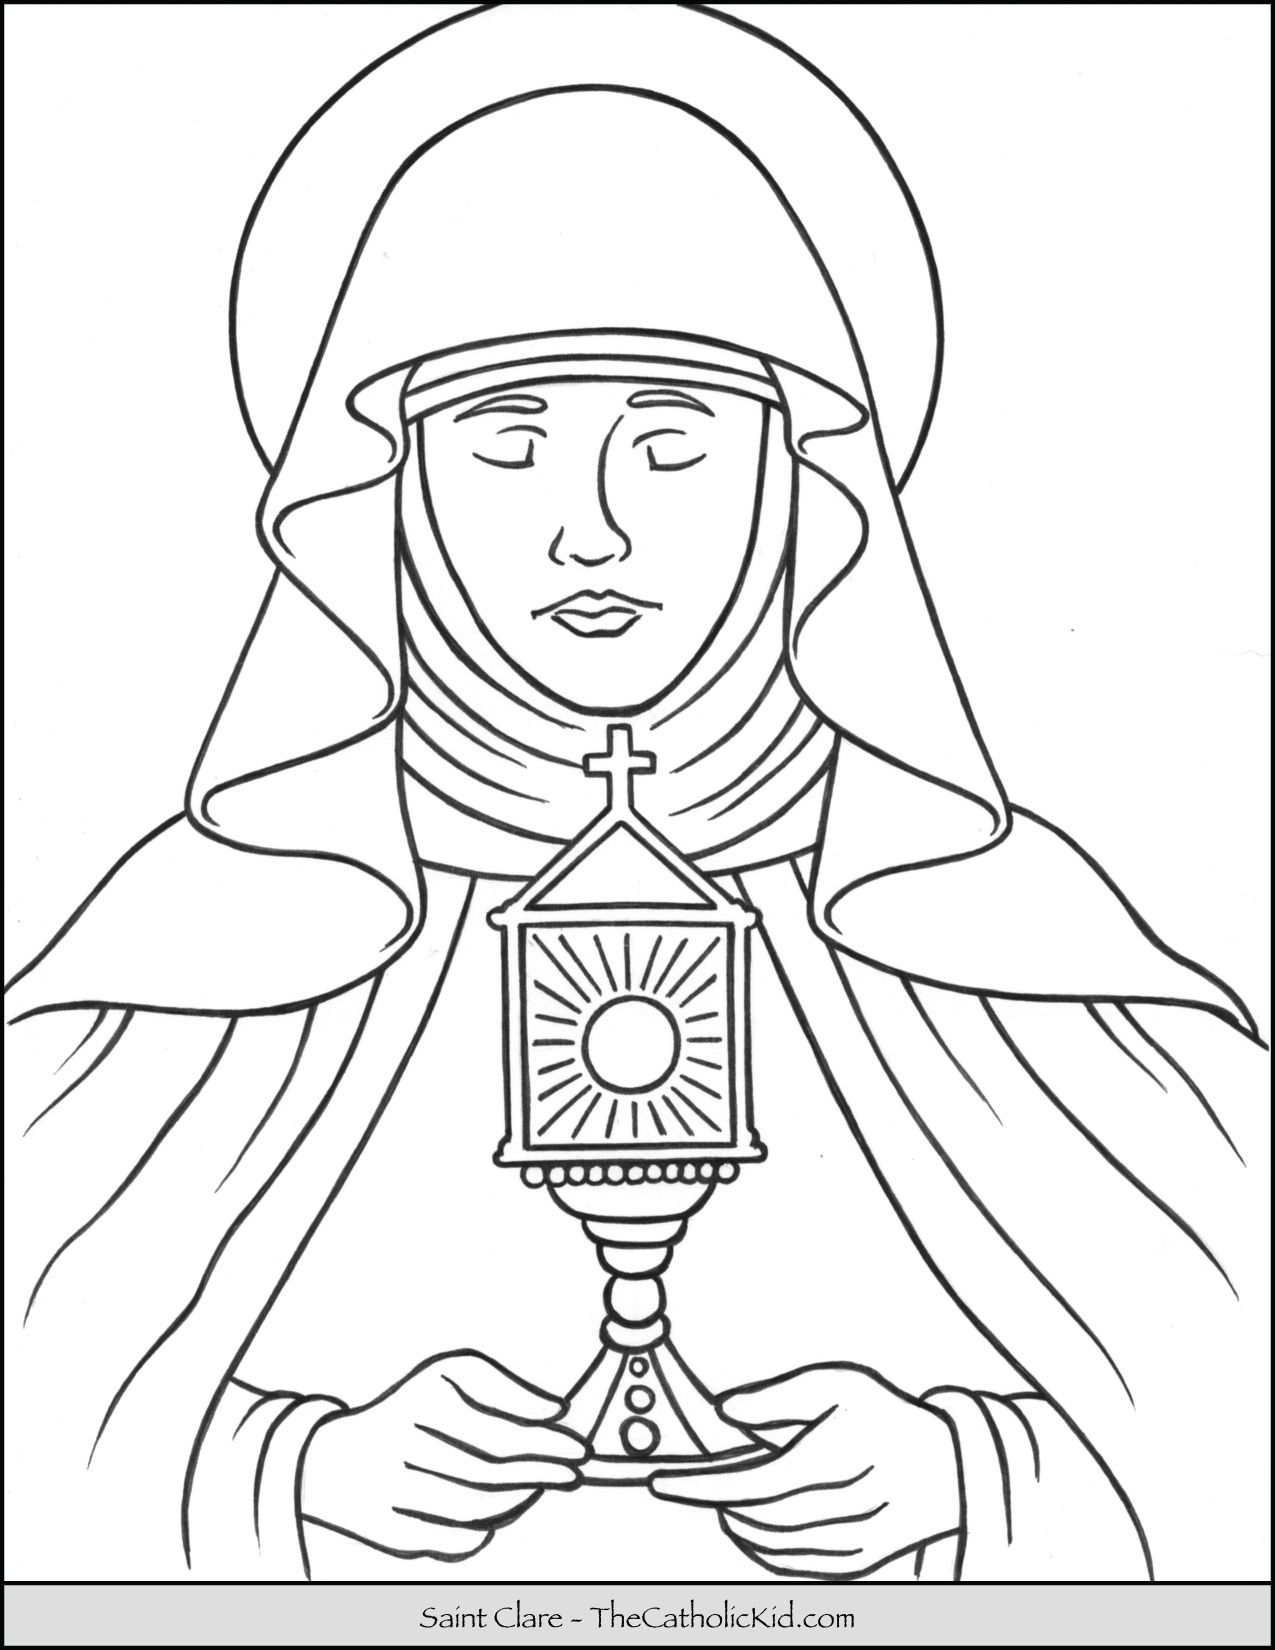 Saint Clare Coloring Page Thecatholickid Com Coloring Pages